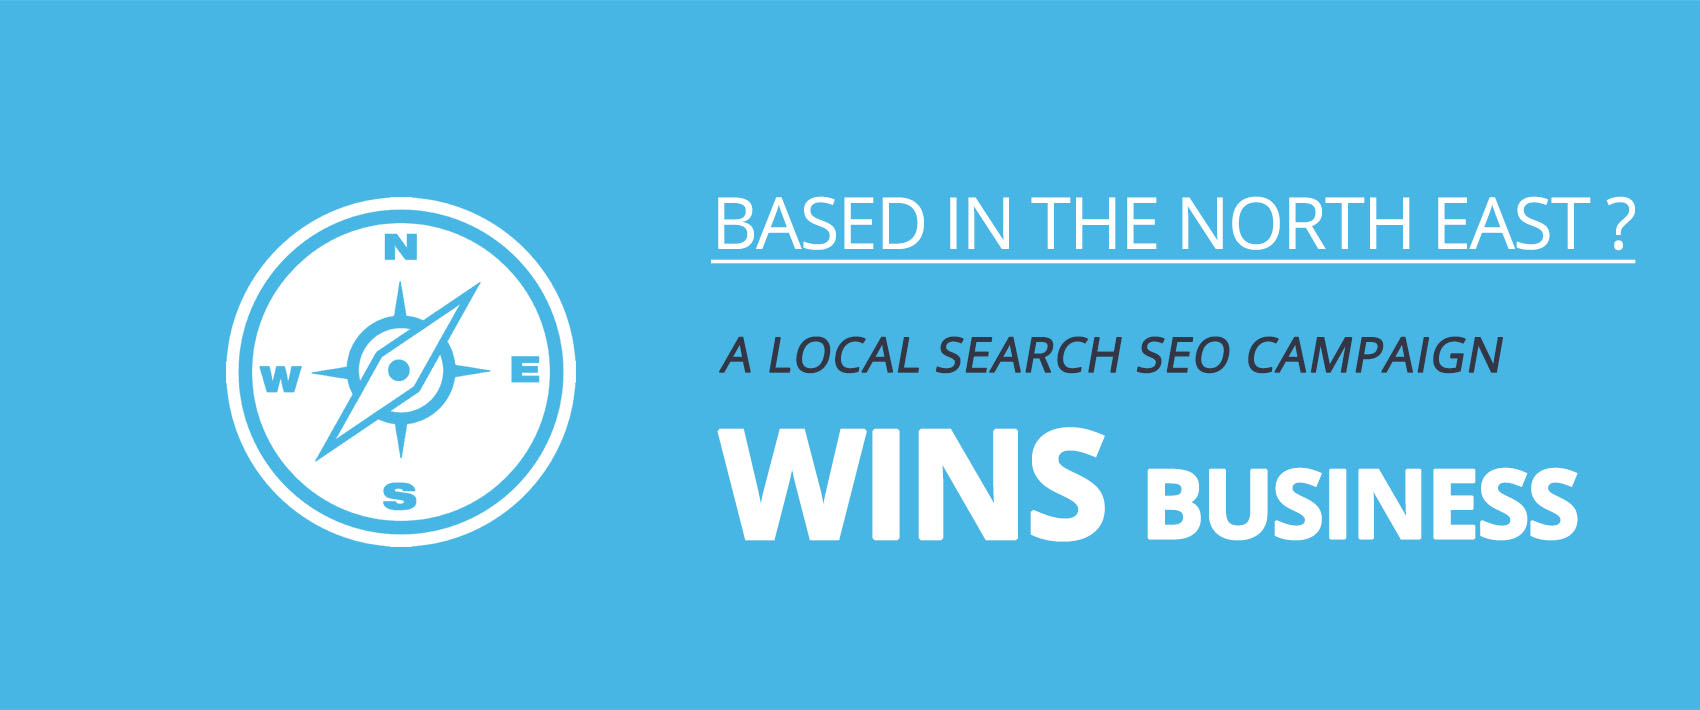 seo north east